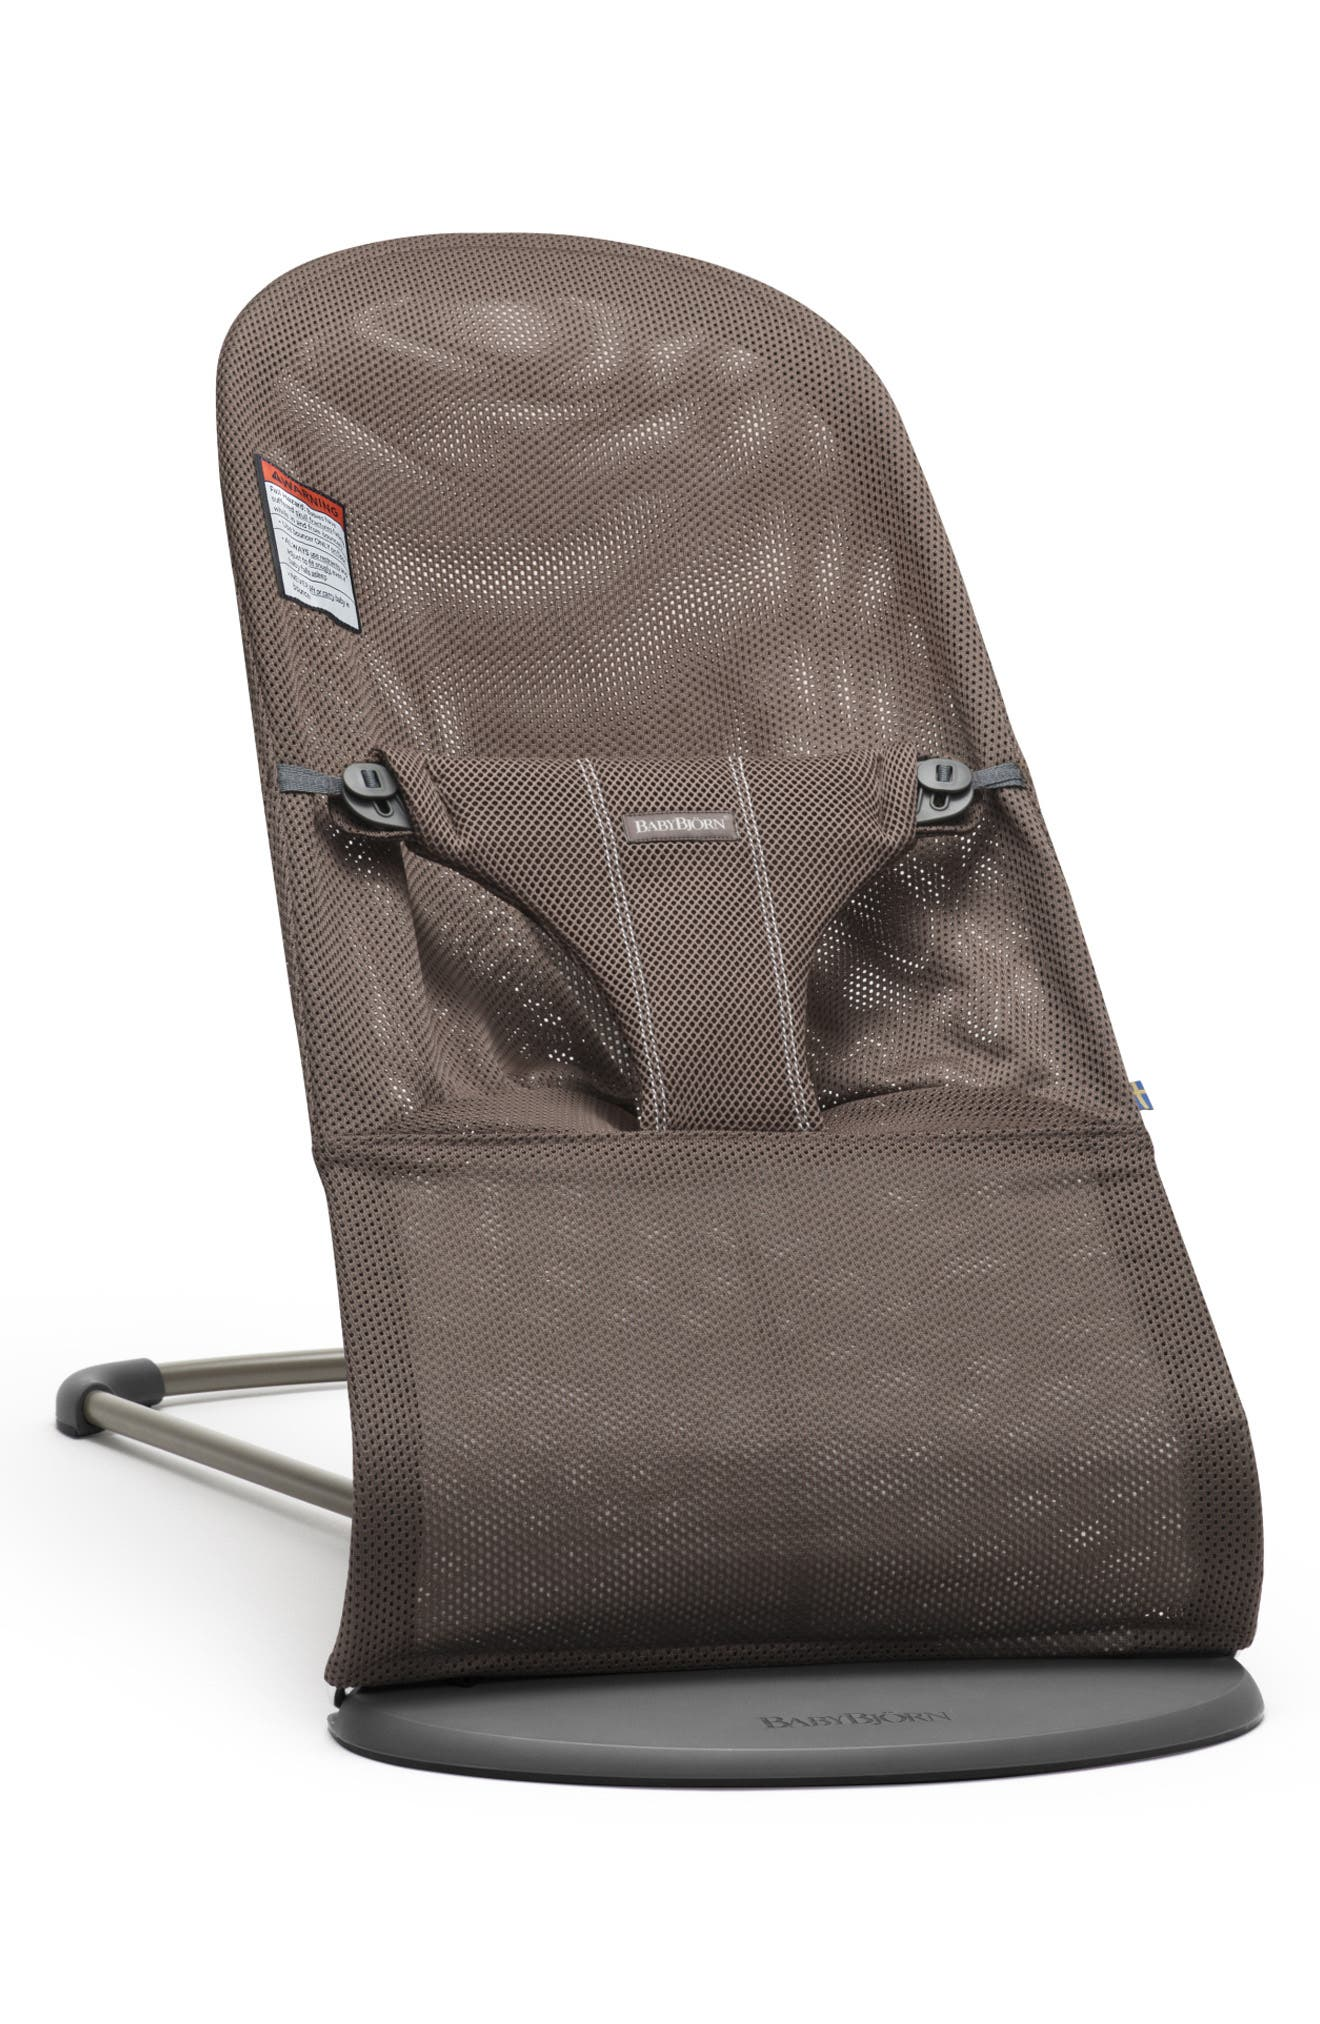 Infant Babybjorn Bouncer Bliss Convertible Mesh Baby Bouncer Size One Size  Brown